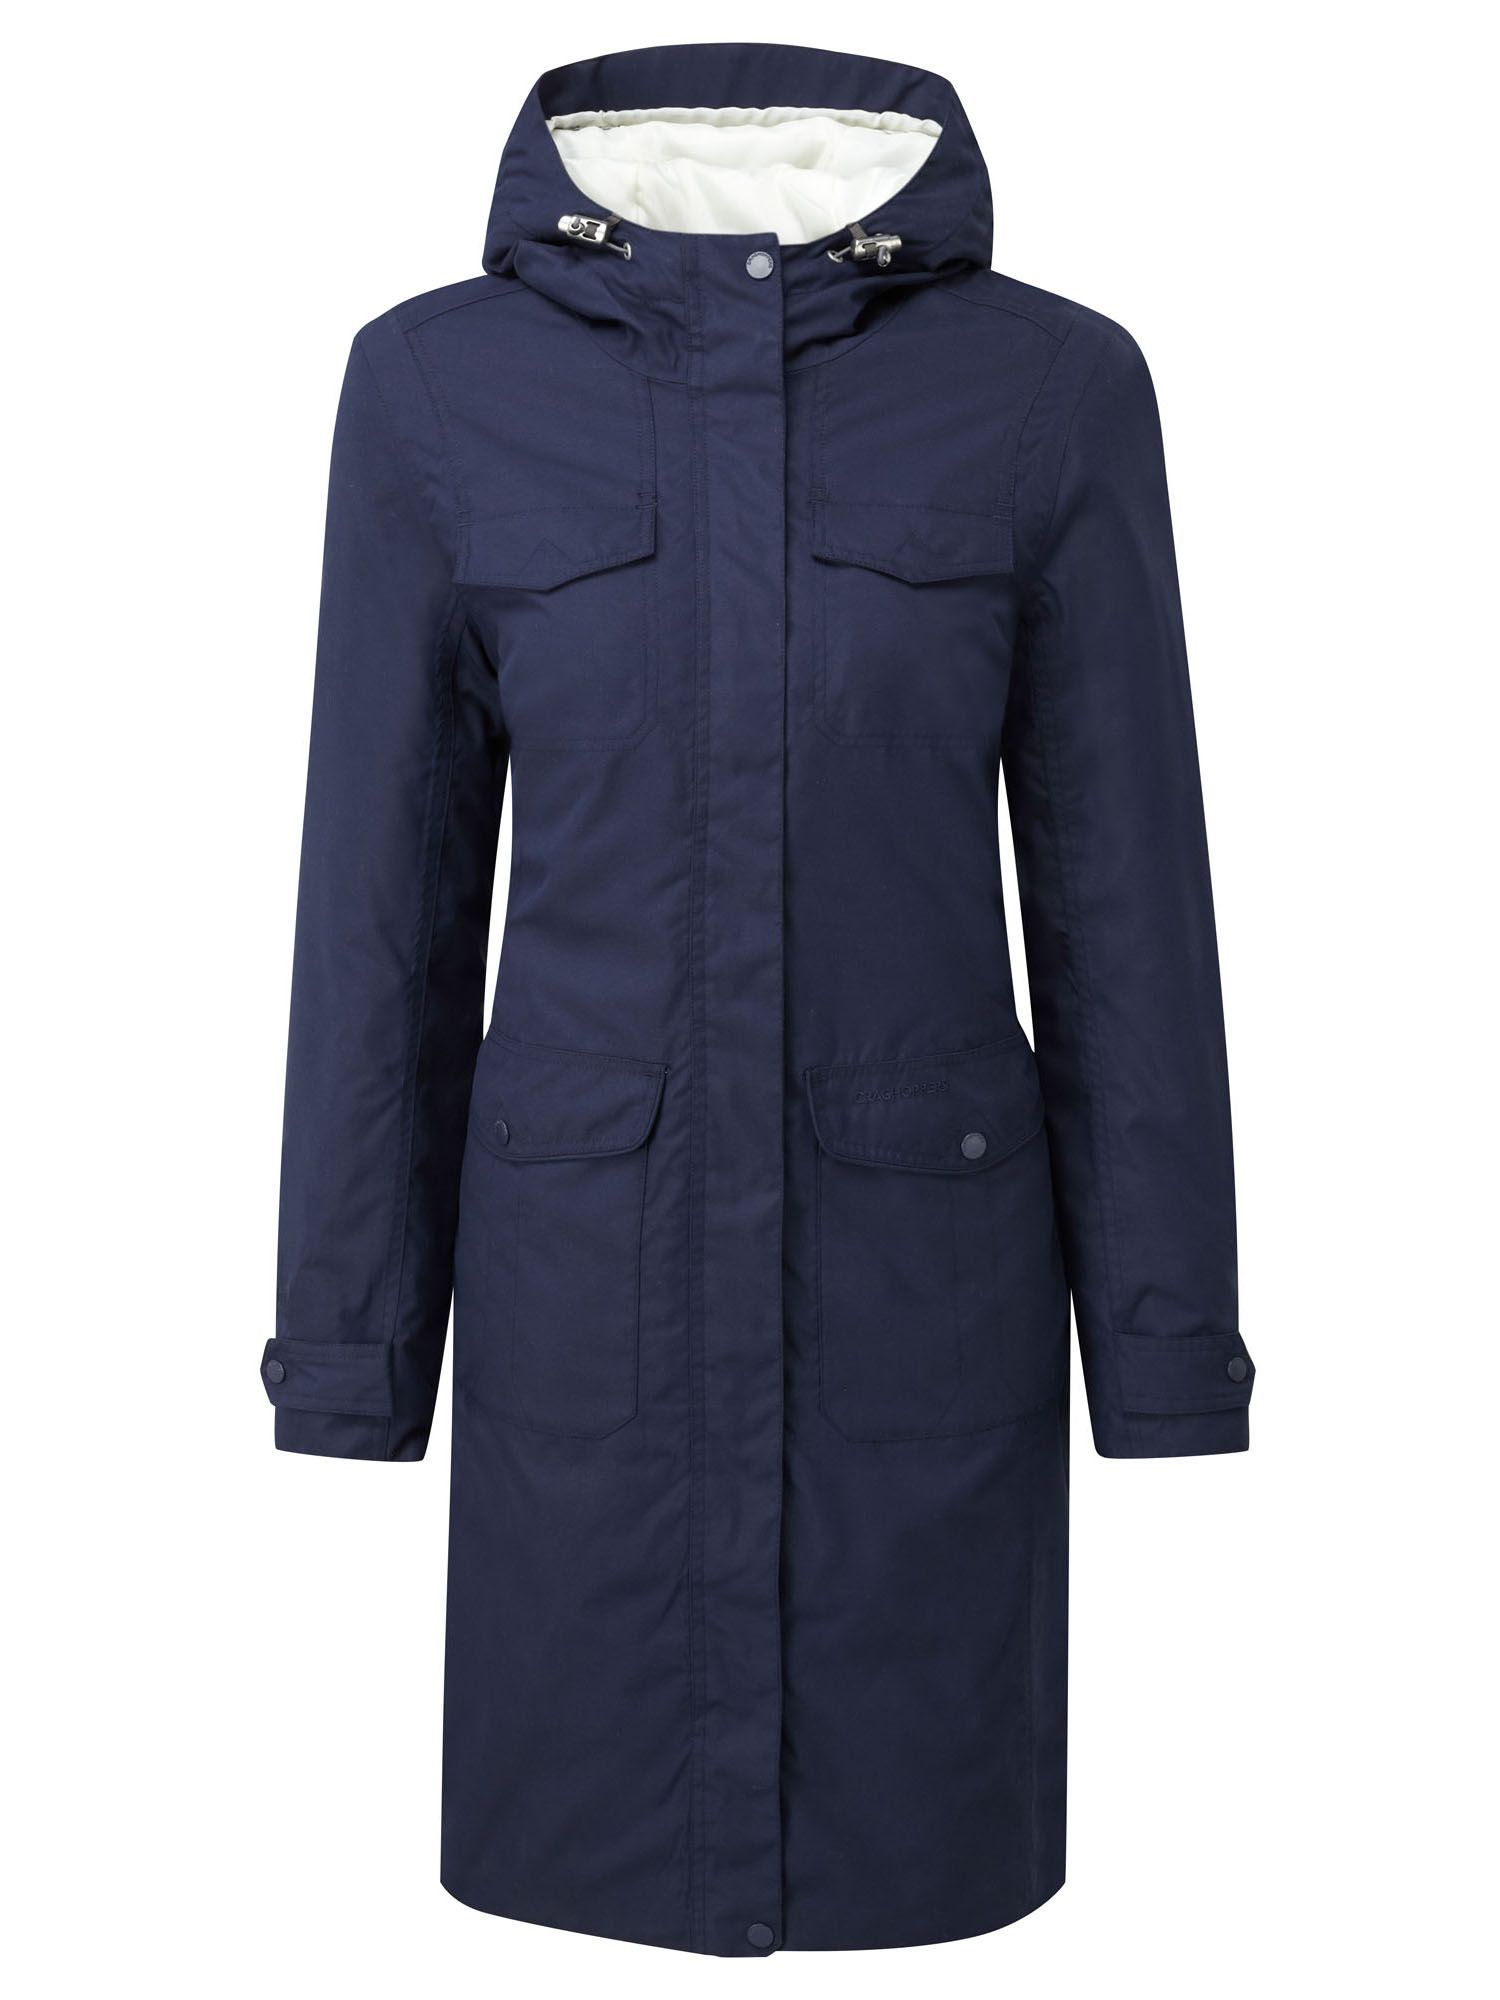 Craghoppers Emley Jacket, Midnight